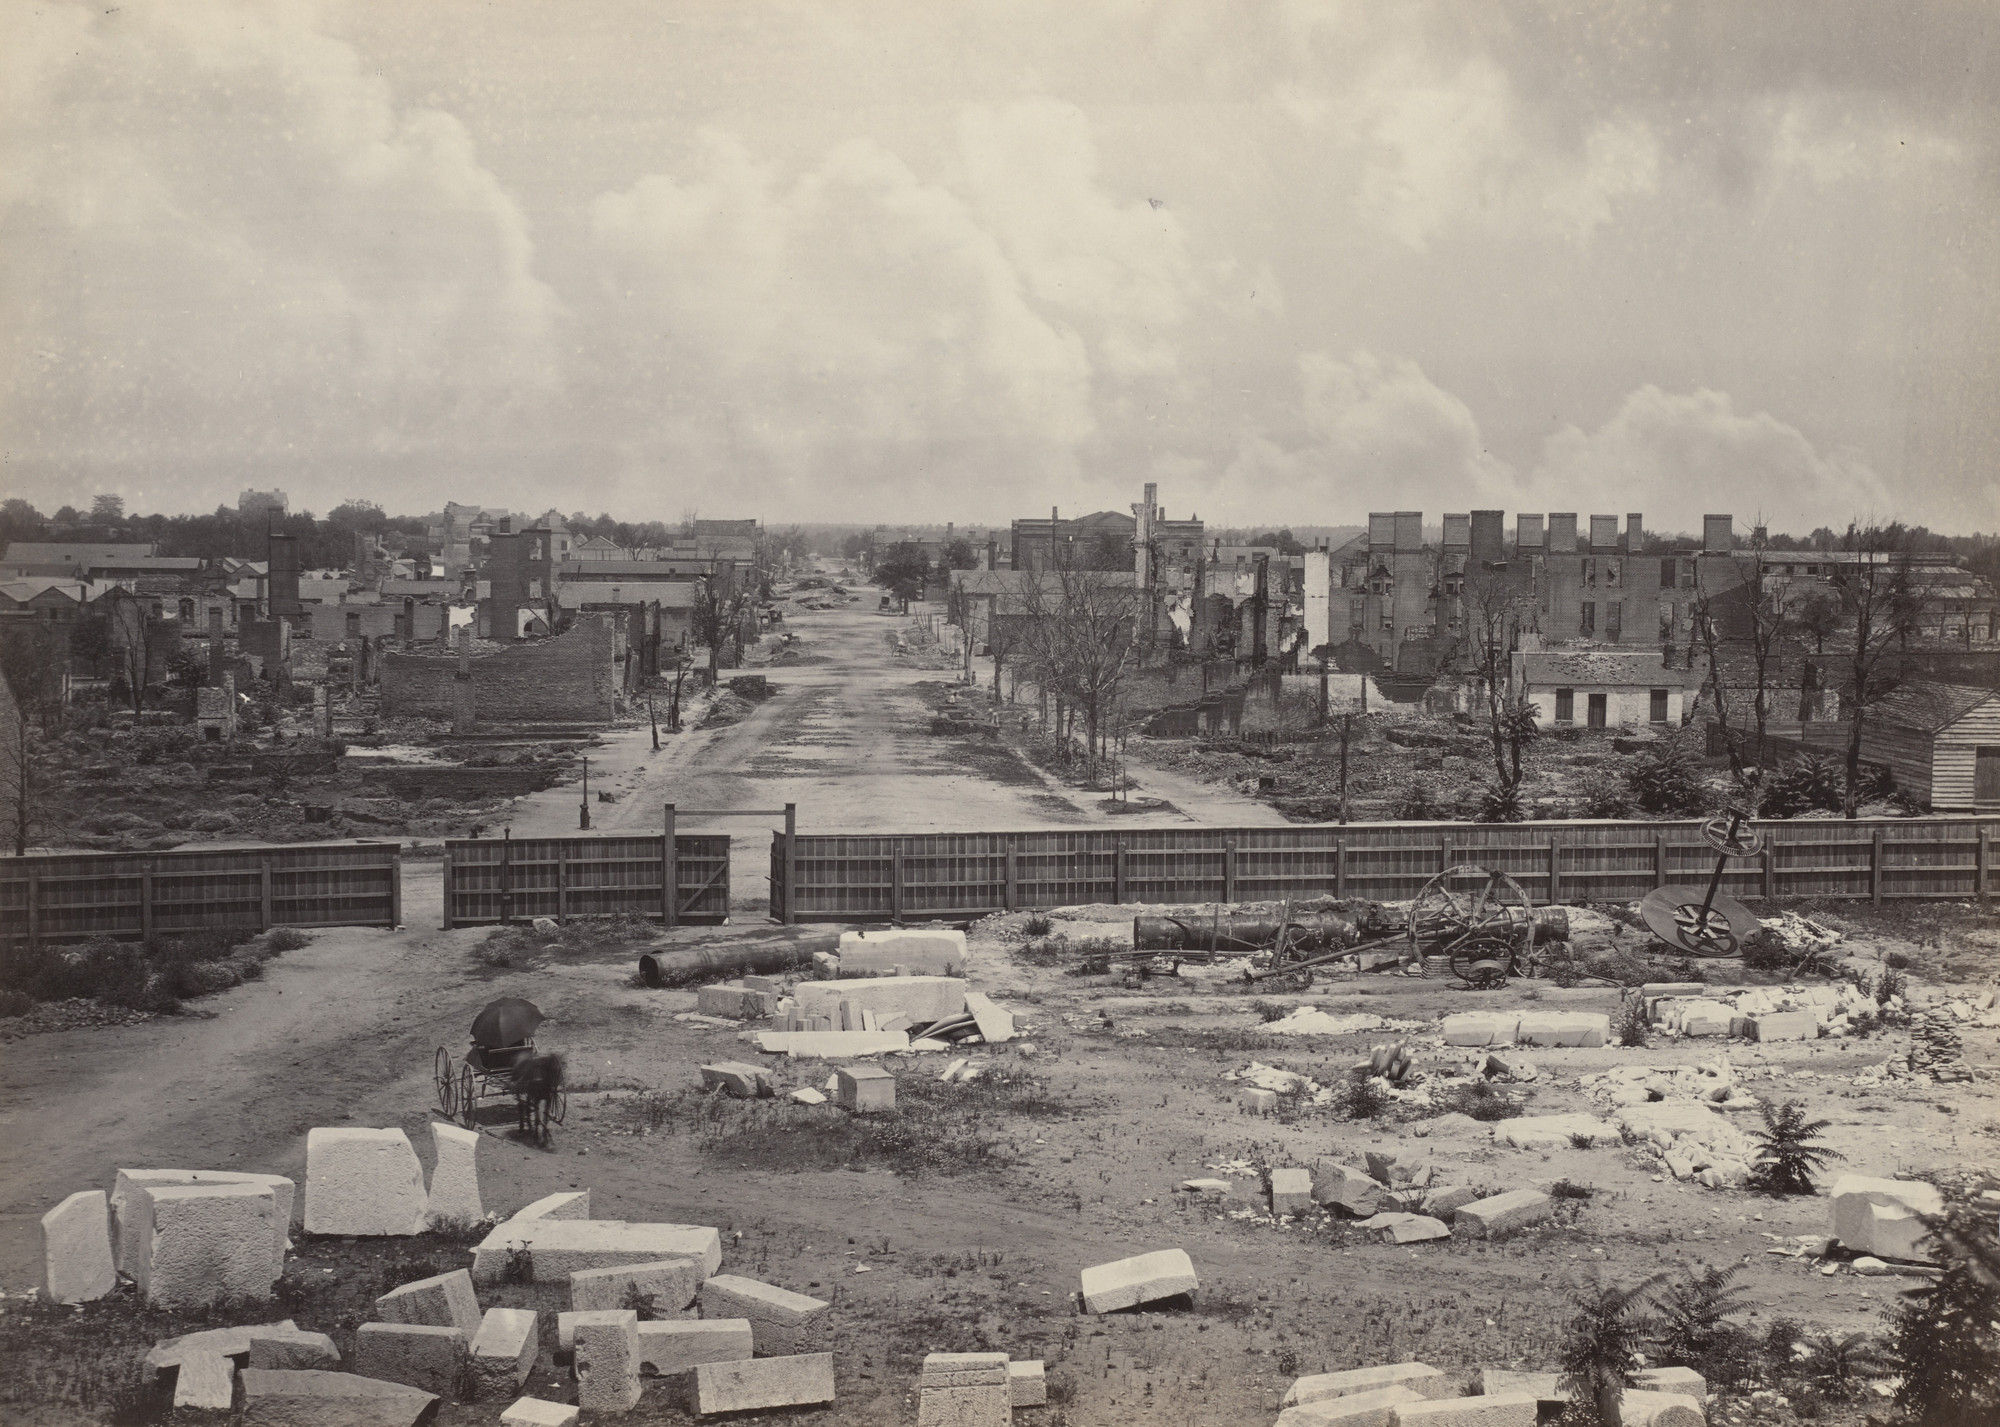 George Barnard. Columbia, from the Captiol from the album Photographic Views of Sherman's Campaign. 1864-65